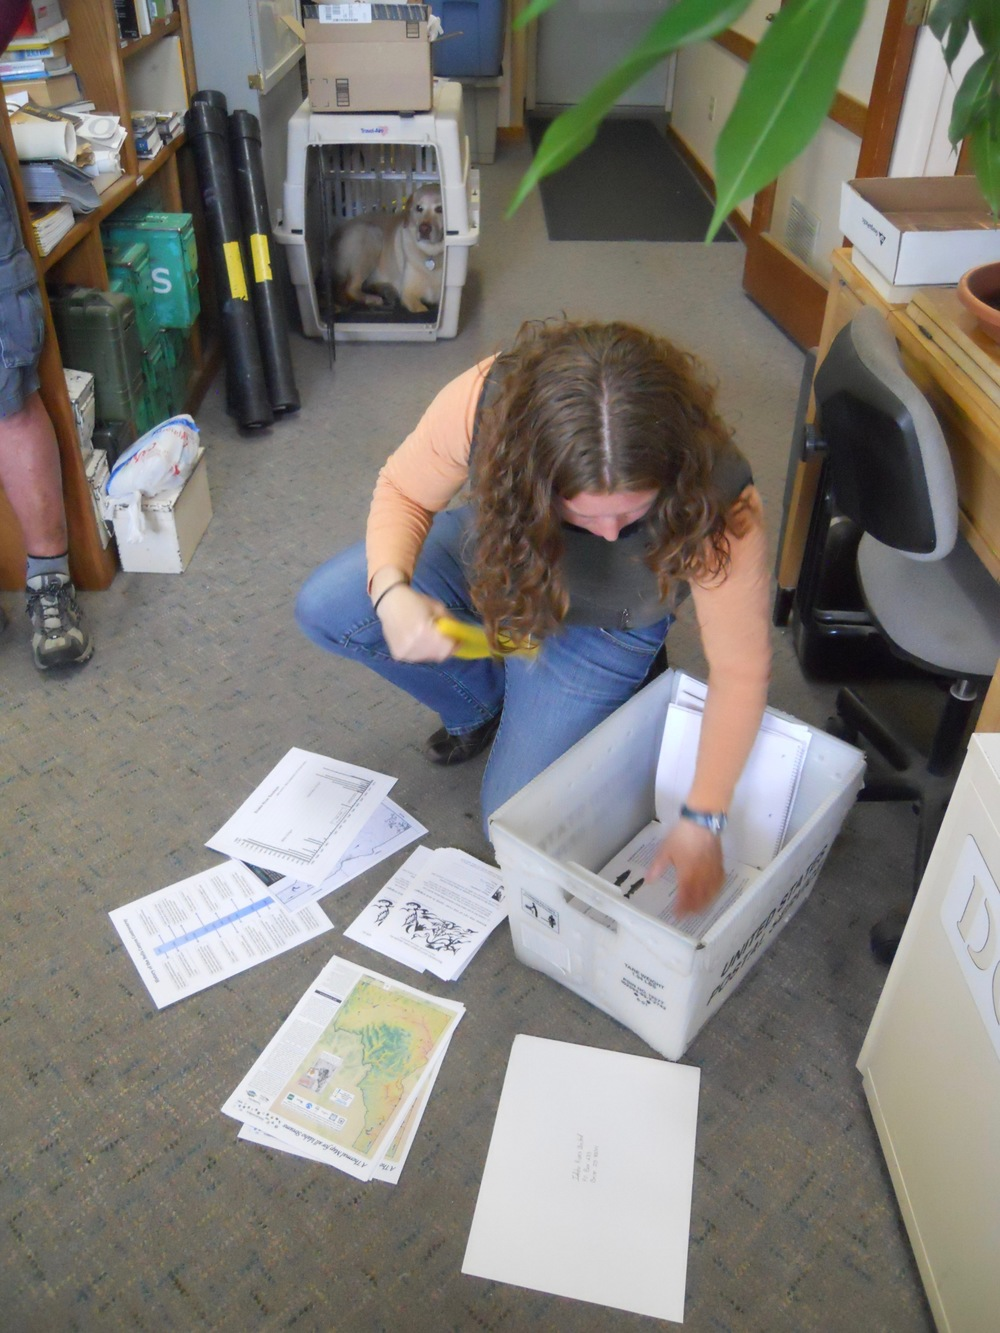 Natalie Shellworth prepares materials for a presentation in north Idaho.